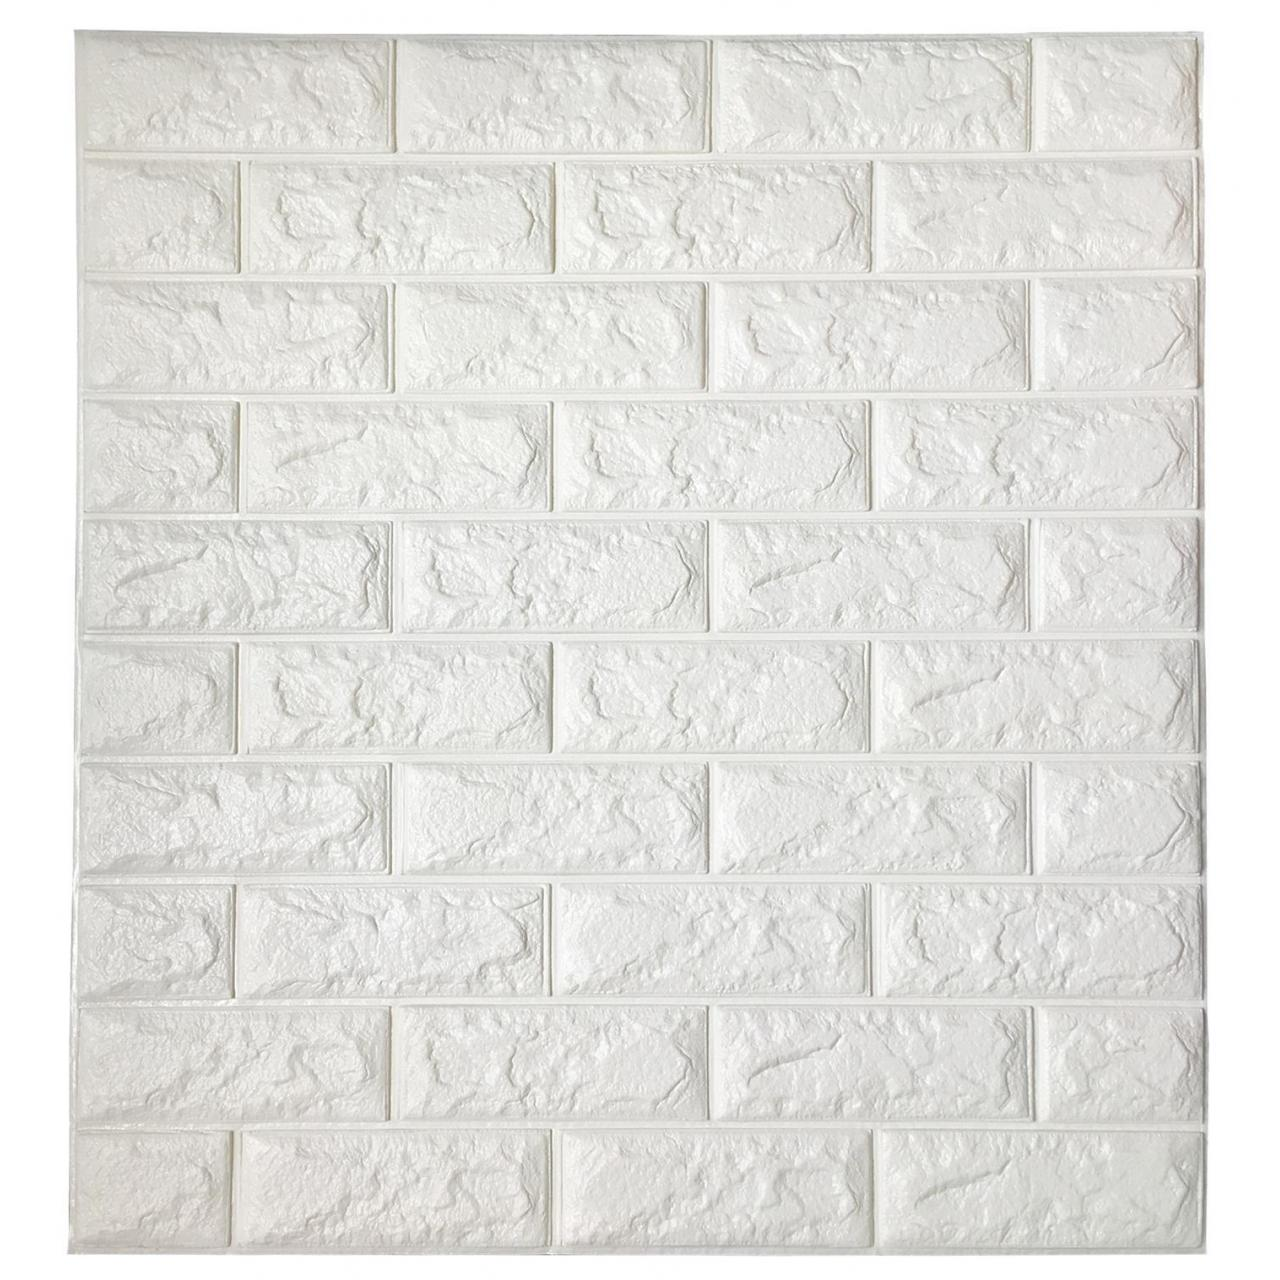 Buy cheap A06001 Peel & Stick Wallpaper Brick Design 10 Sheets 59 Sq.Ft from wholesalers